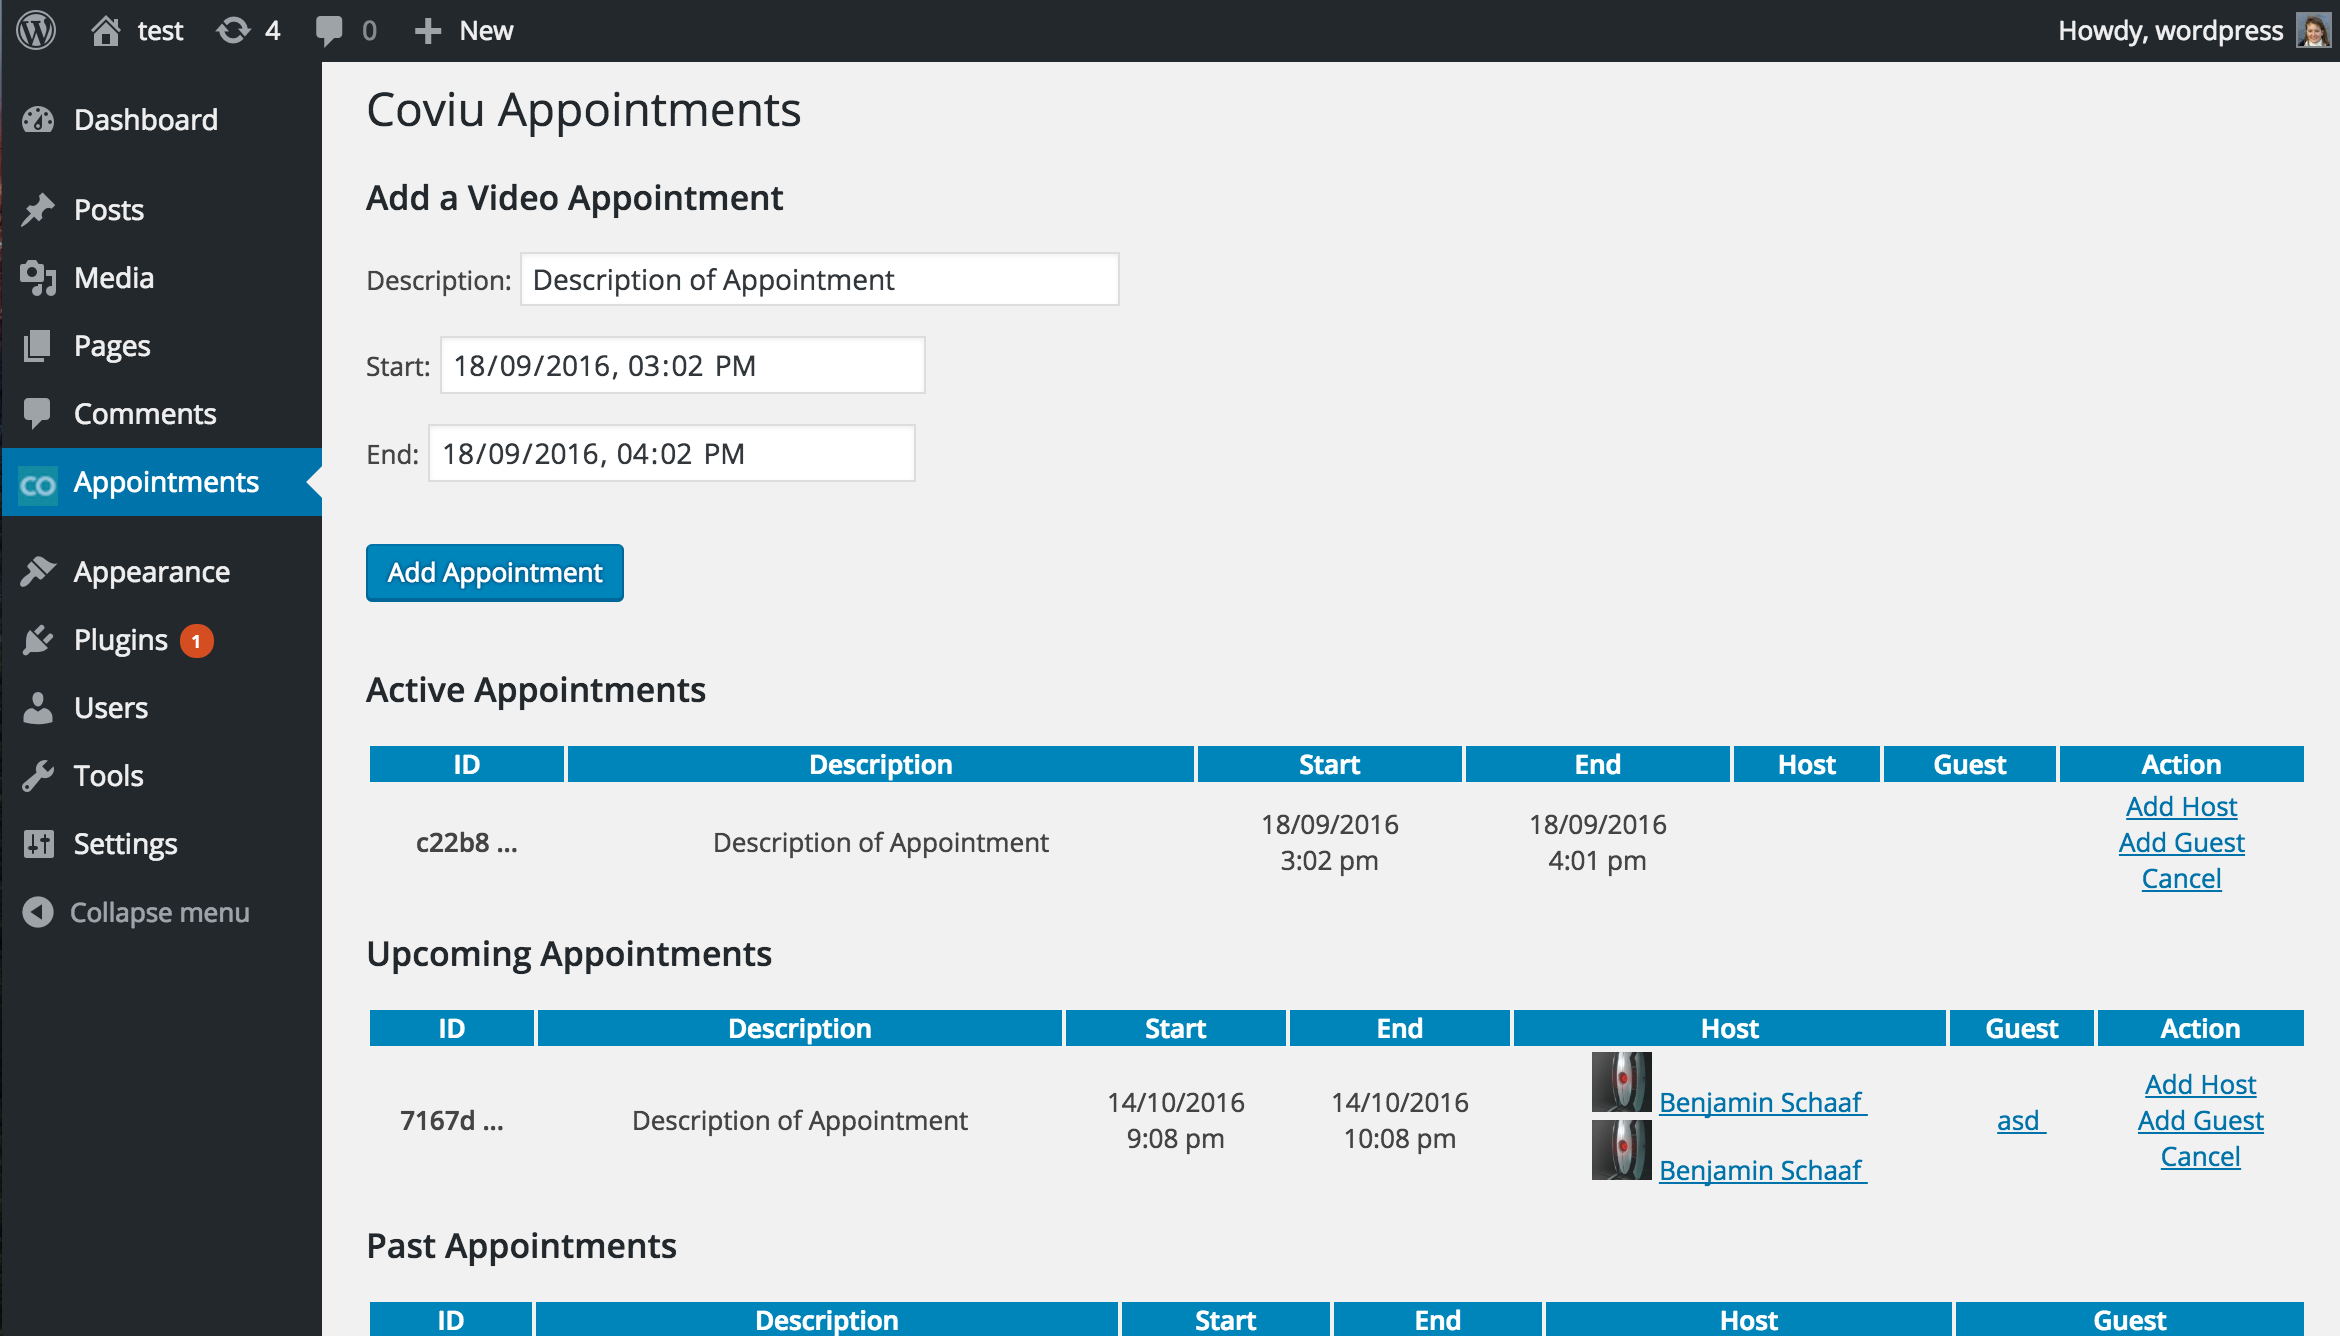 Screenshot2.png : the appointments page of the Coviu video calls WordPress plugin